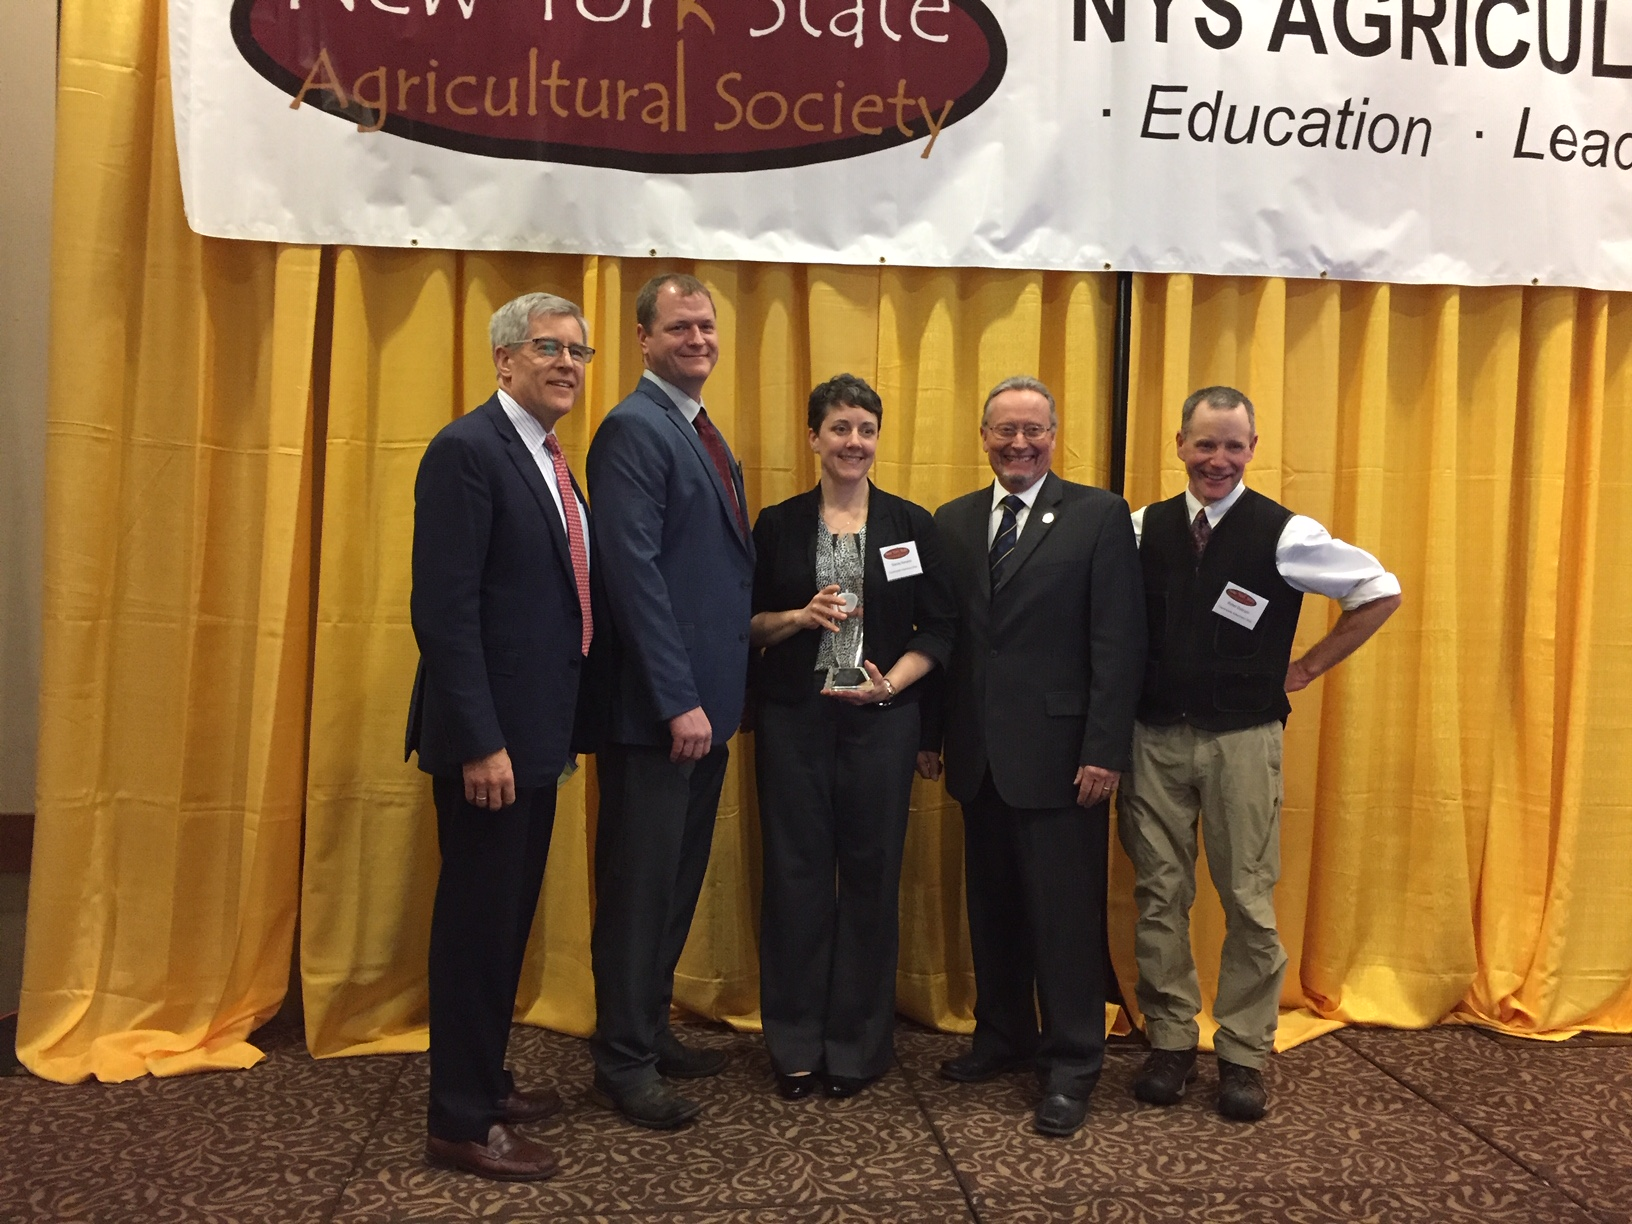 Rick Zimmerman and Commissioner Richard Ball present the Business of the Year Award to Countryside Vet Clinic principals Dr. Craig Pauly, Dr. Stacy Kenyon, Dr. Peter Ostrum.